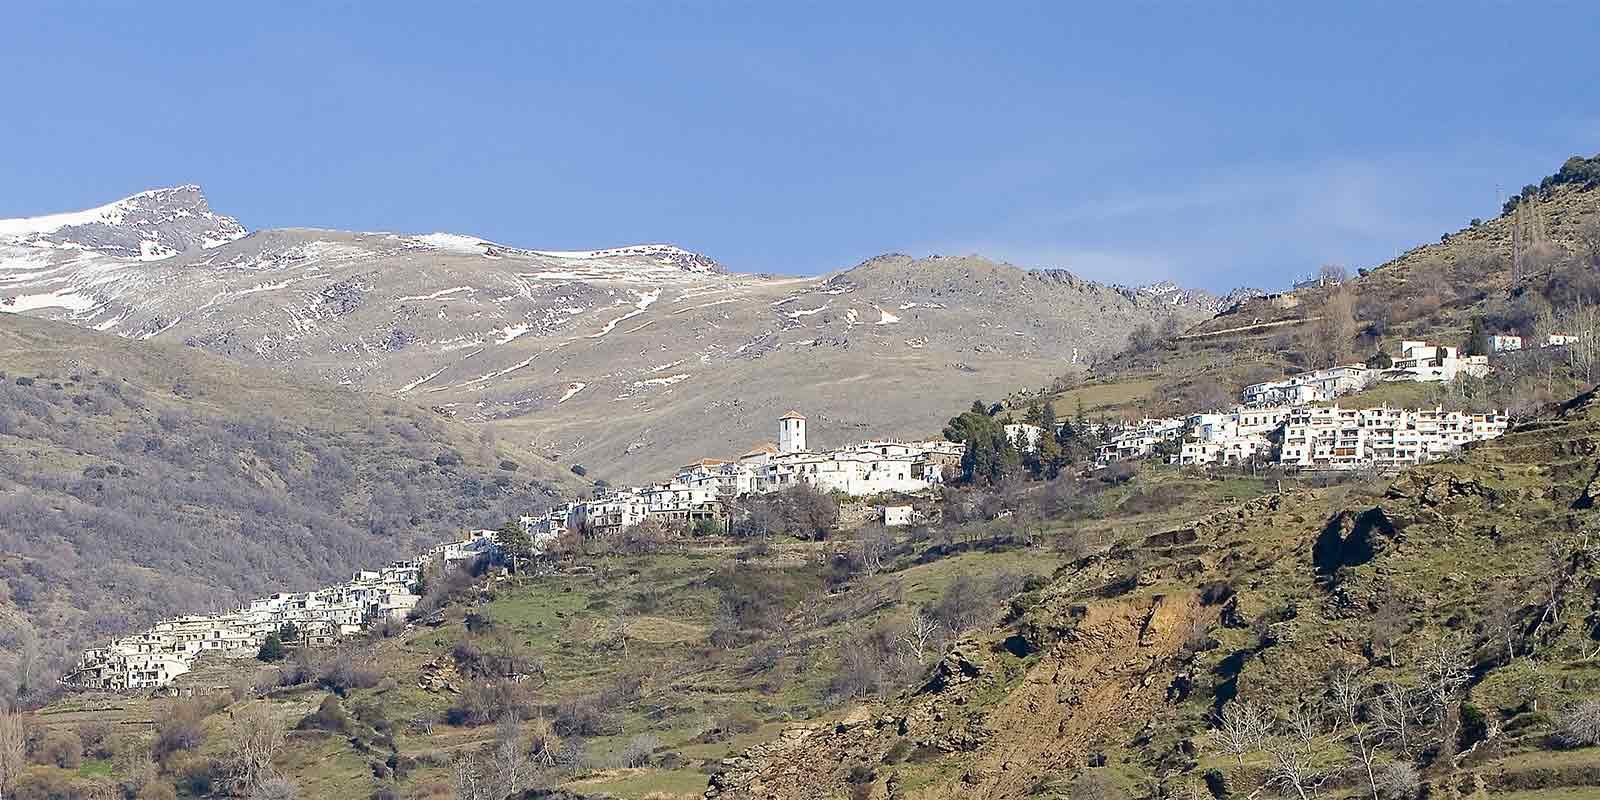 Town of Capileira in the Sierra Nevada mountains on the GR7 walking trail